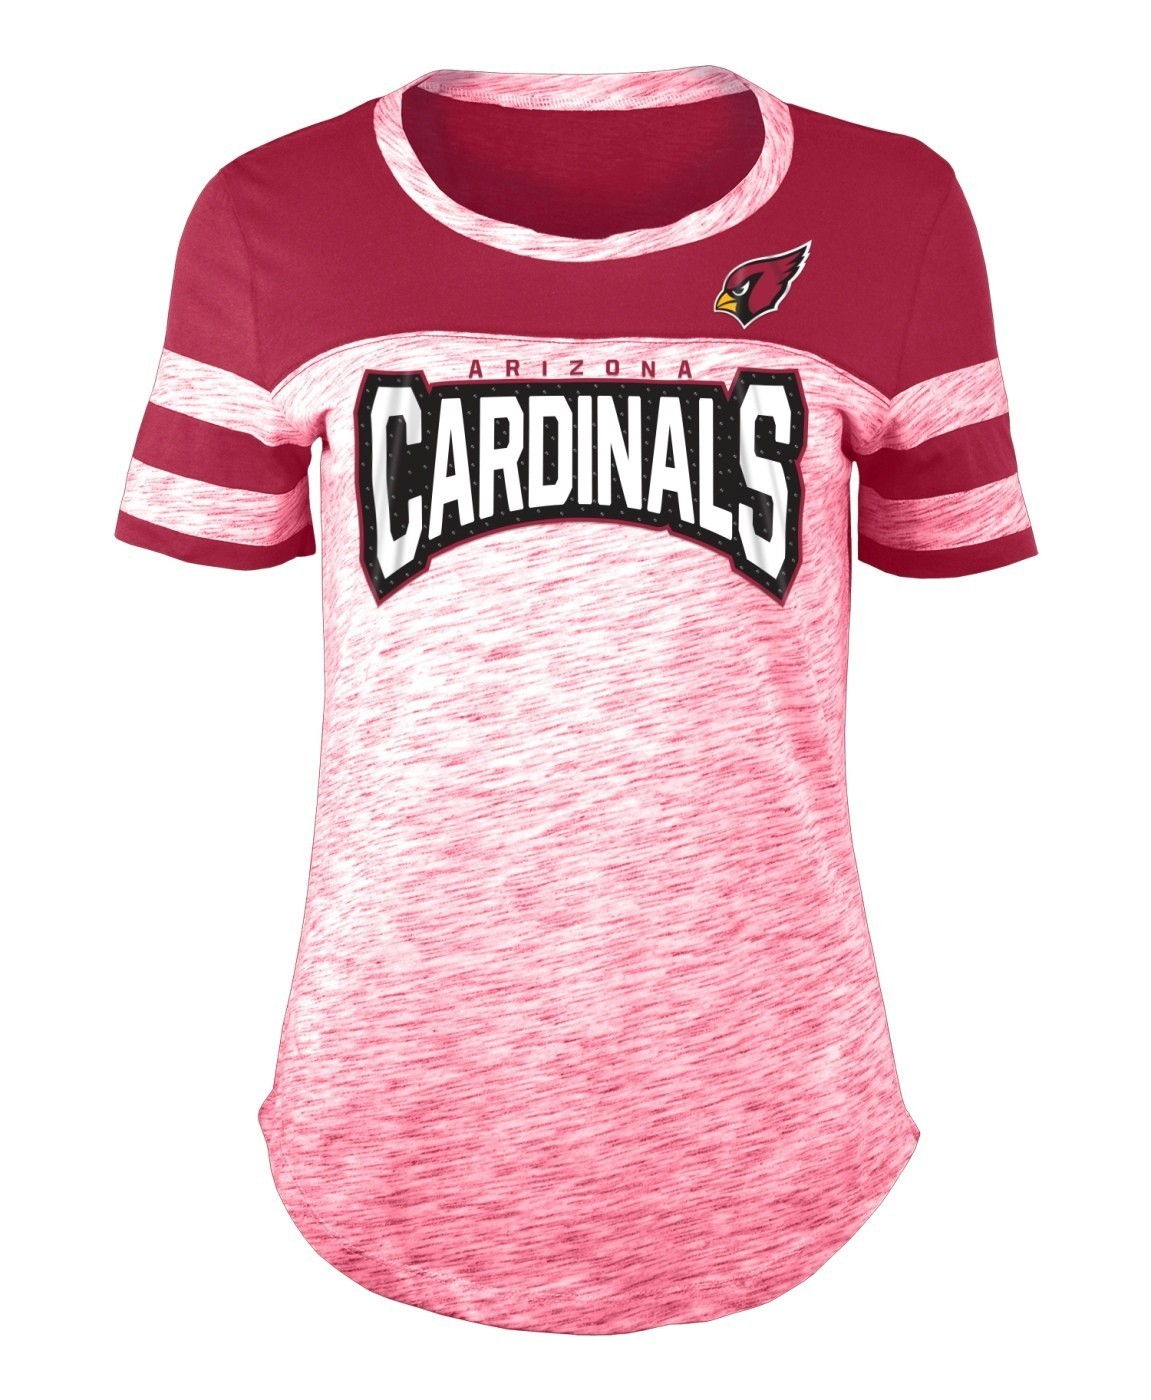 Details about Arizona Cardinals Women s New Era NFL